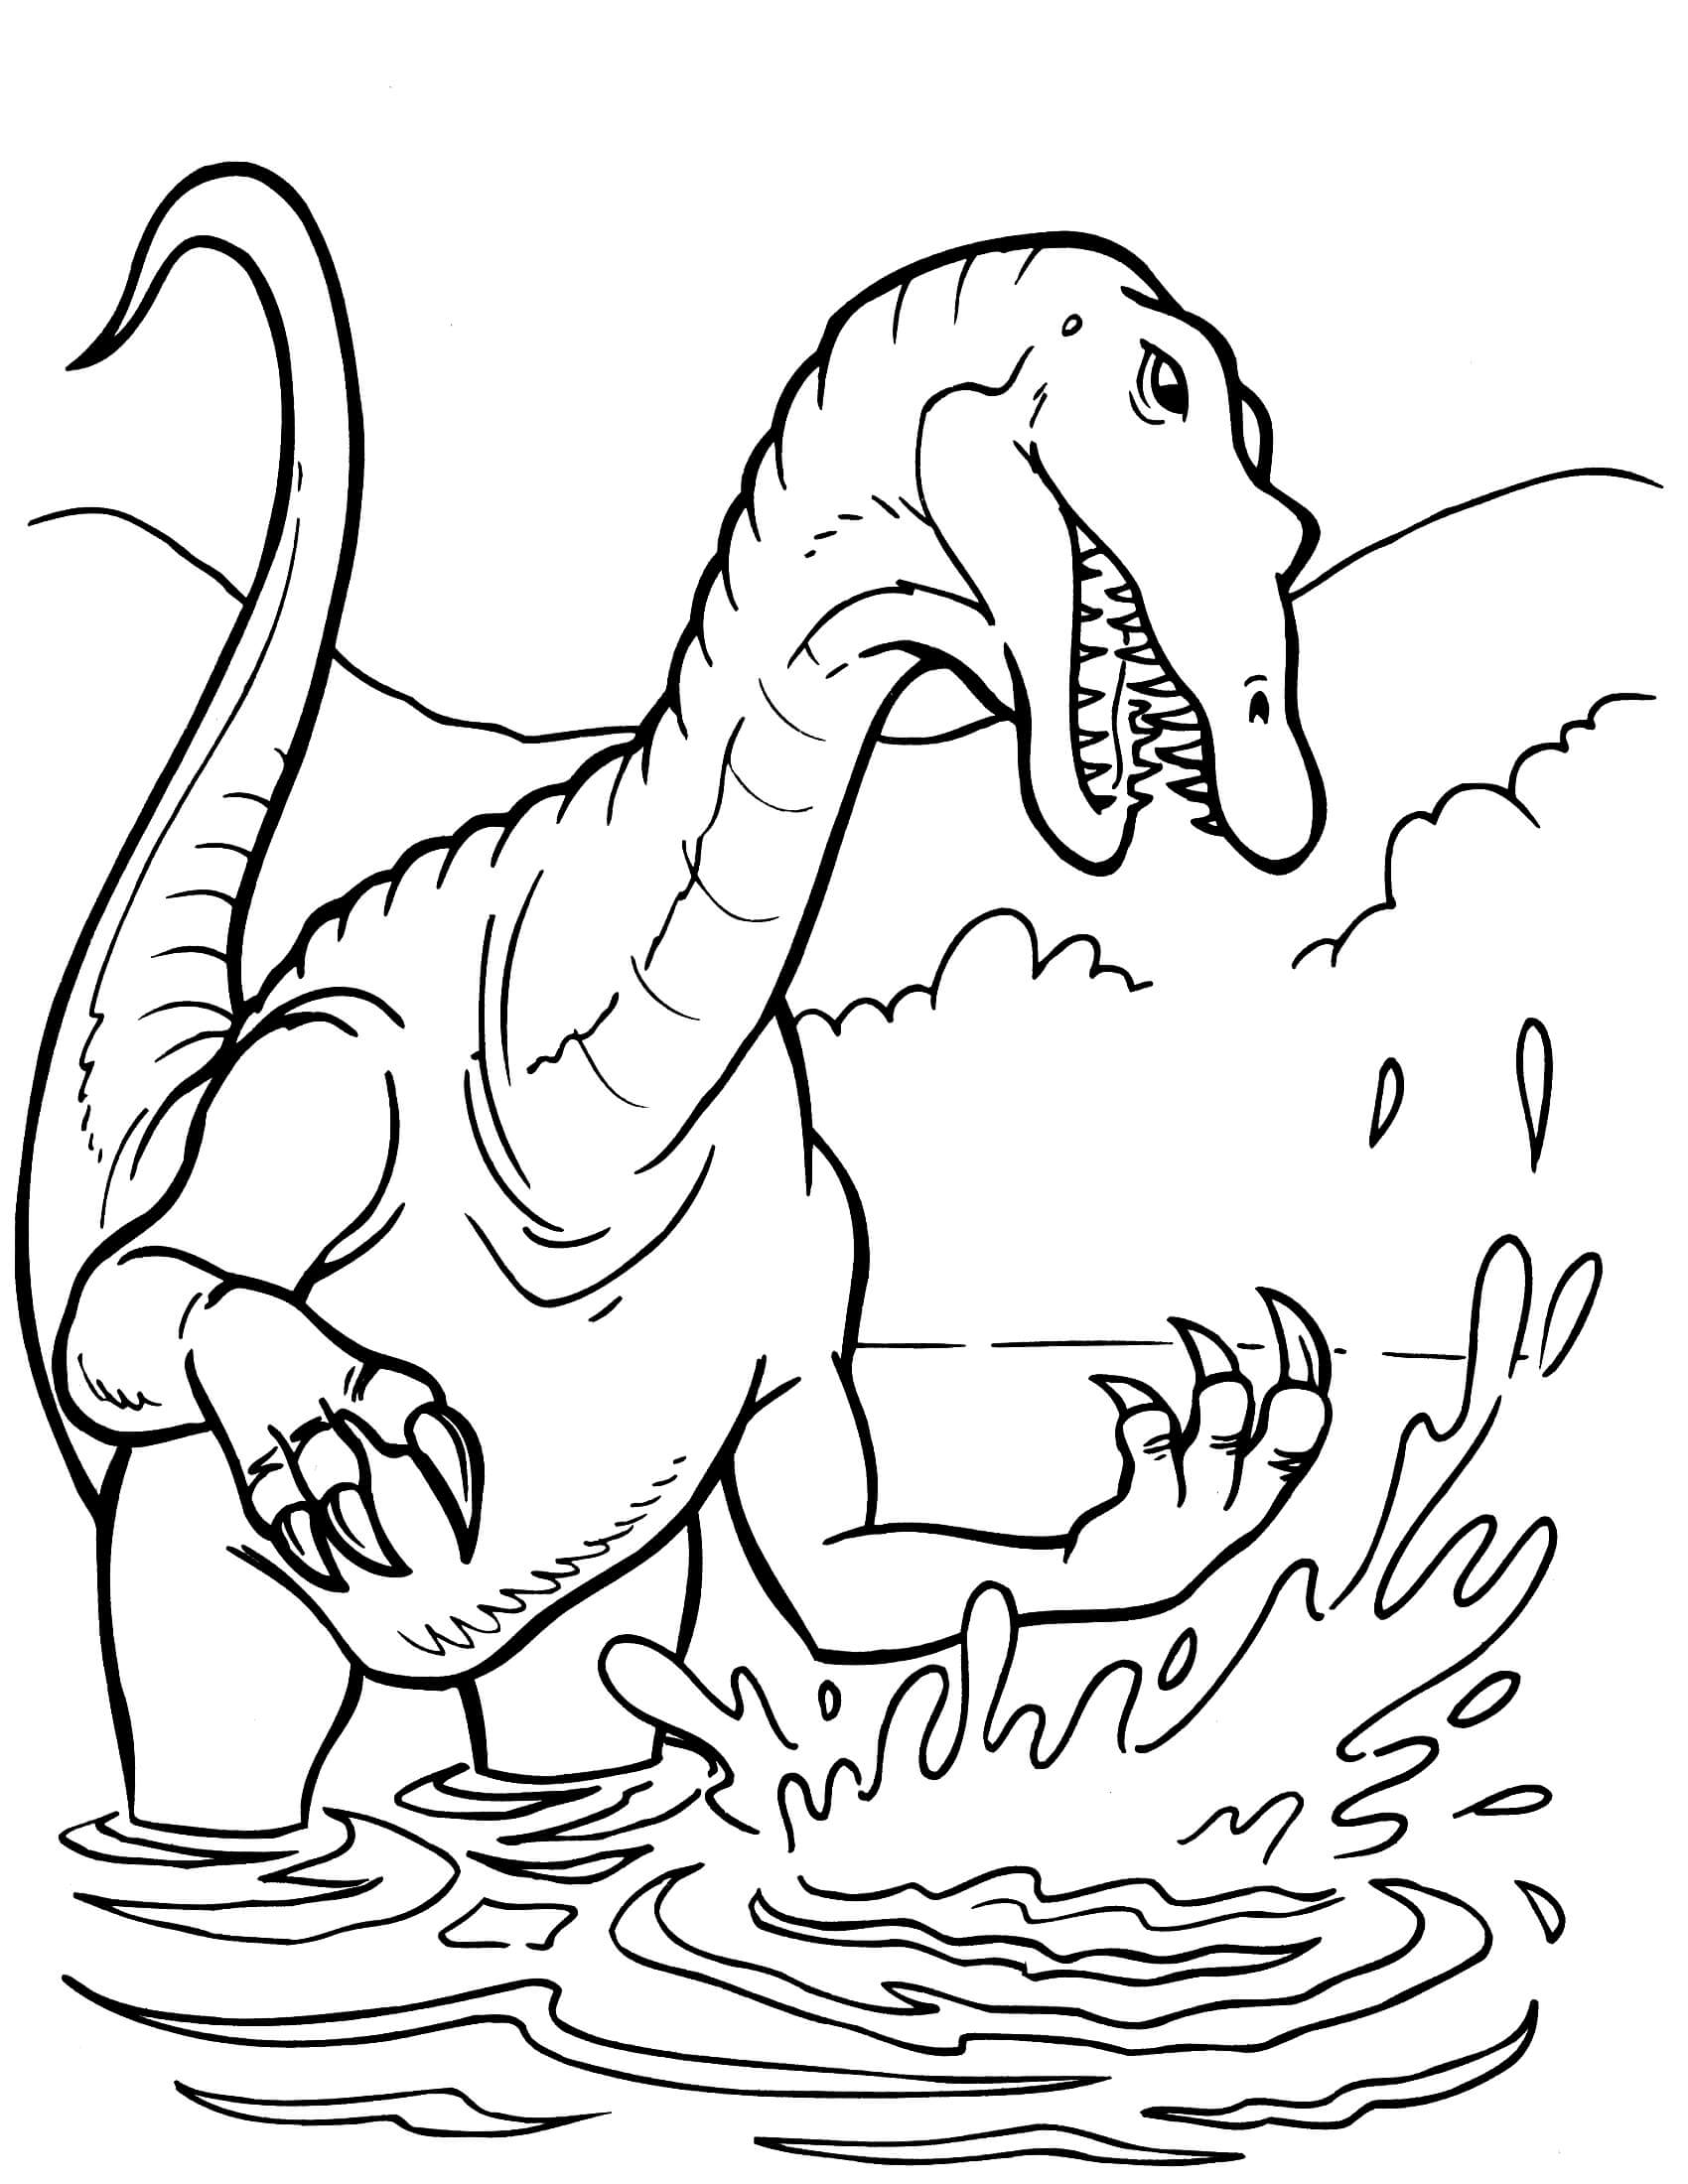 dinosaurs printable coloring pages dinosaur 6 coloringcolorcom dinosaurs printable pages coloring